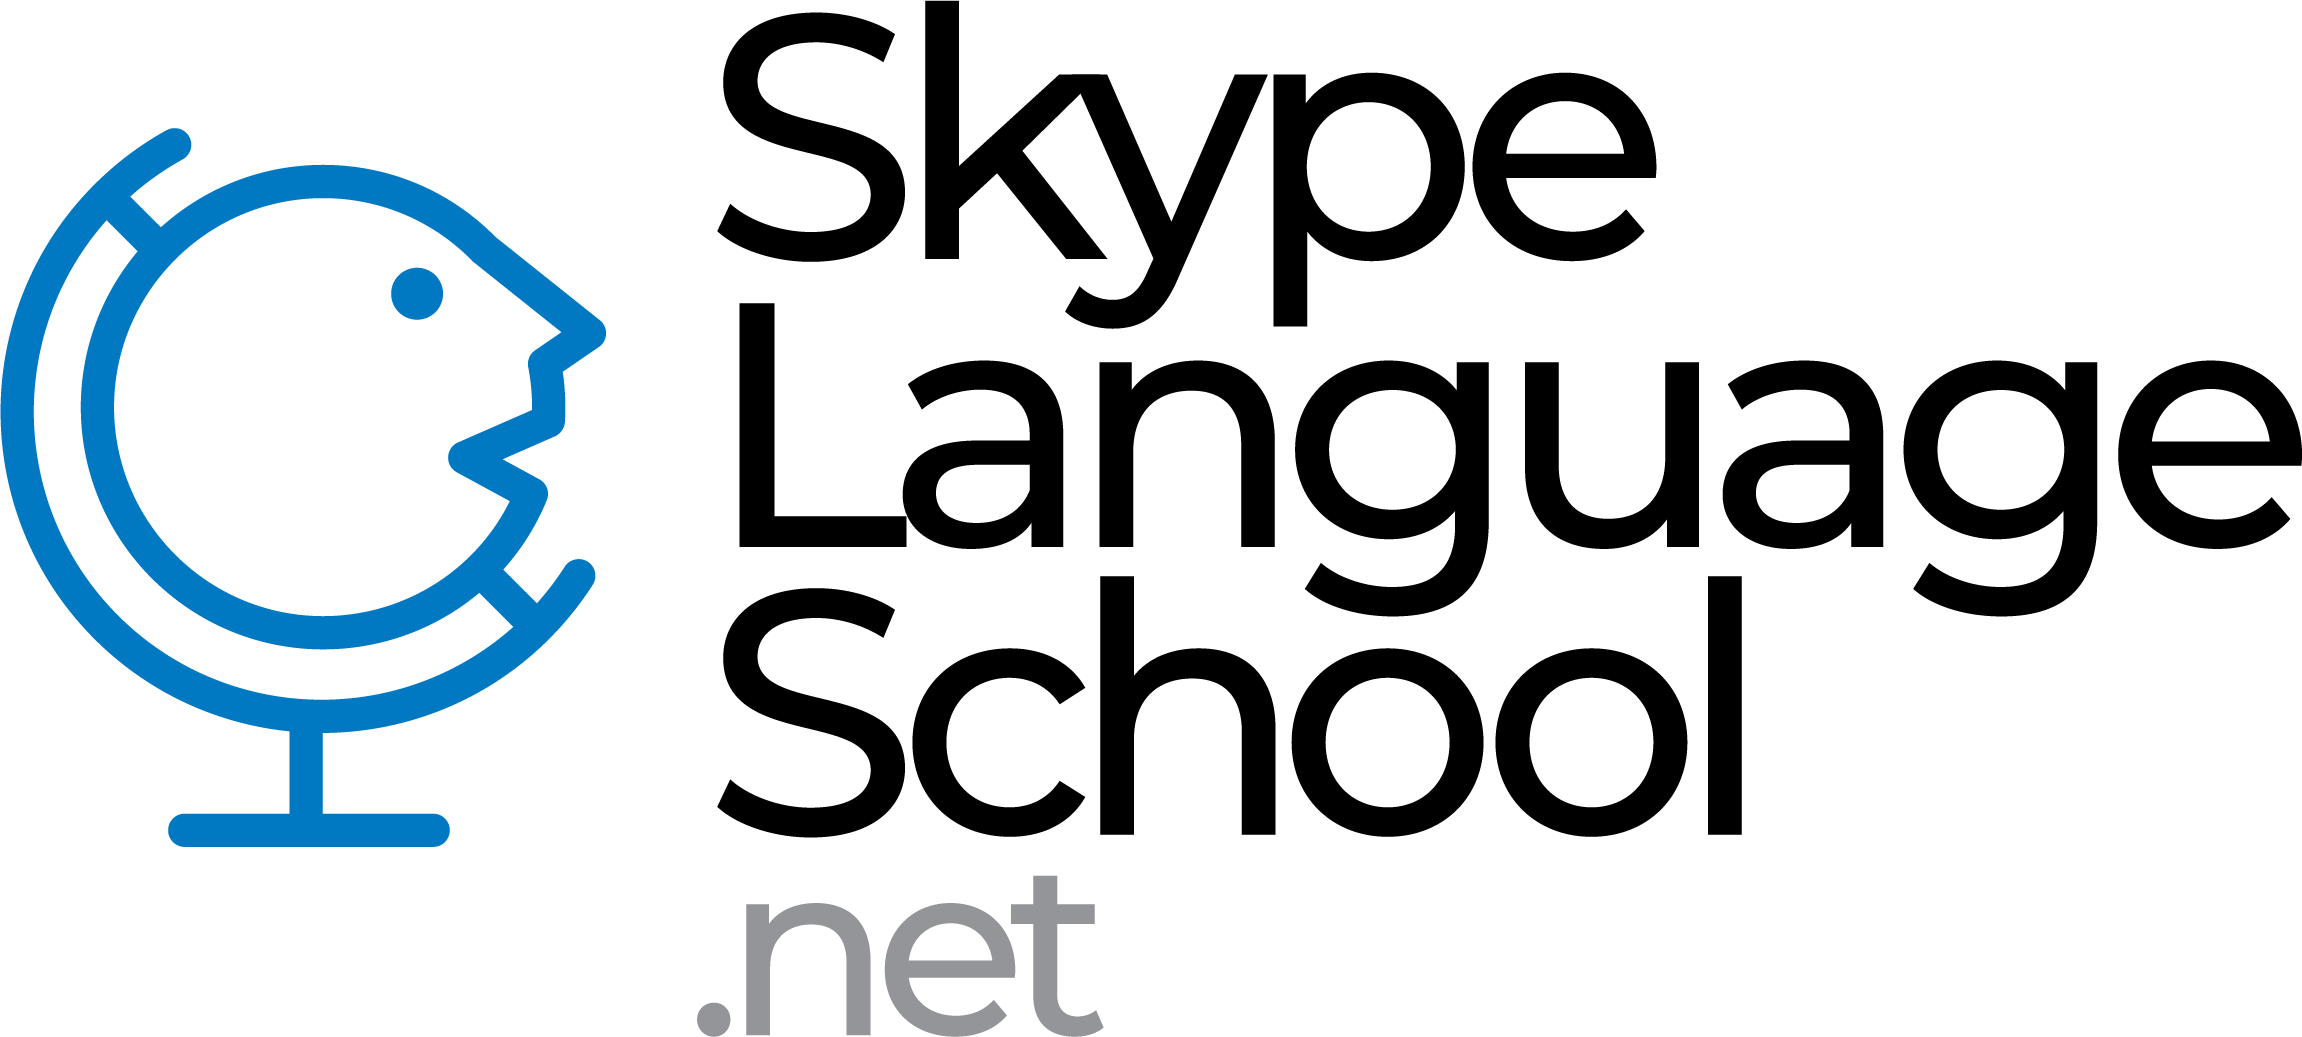 We are a group of independent language teachers on Skype, we are determined to educate the world